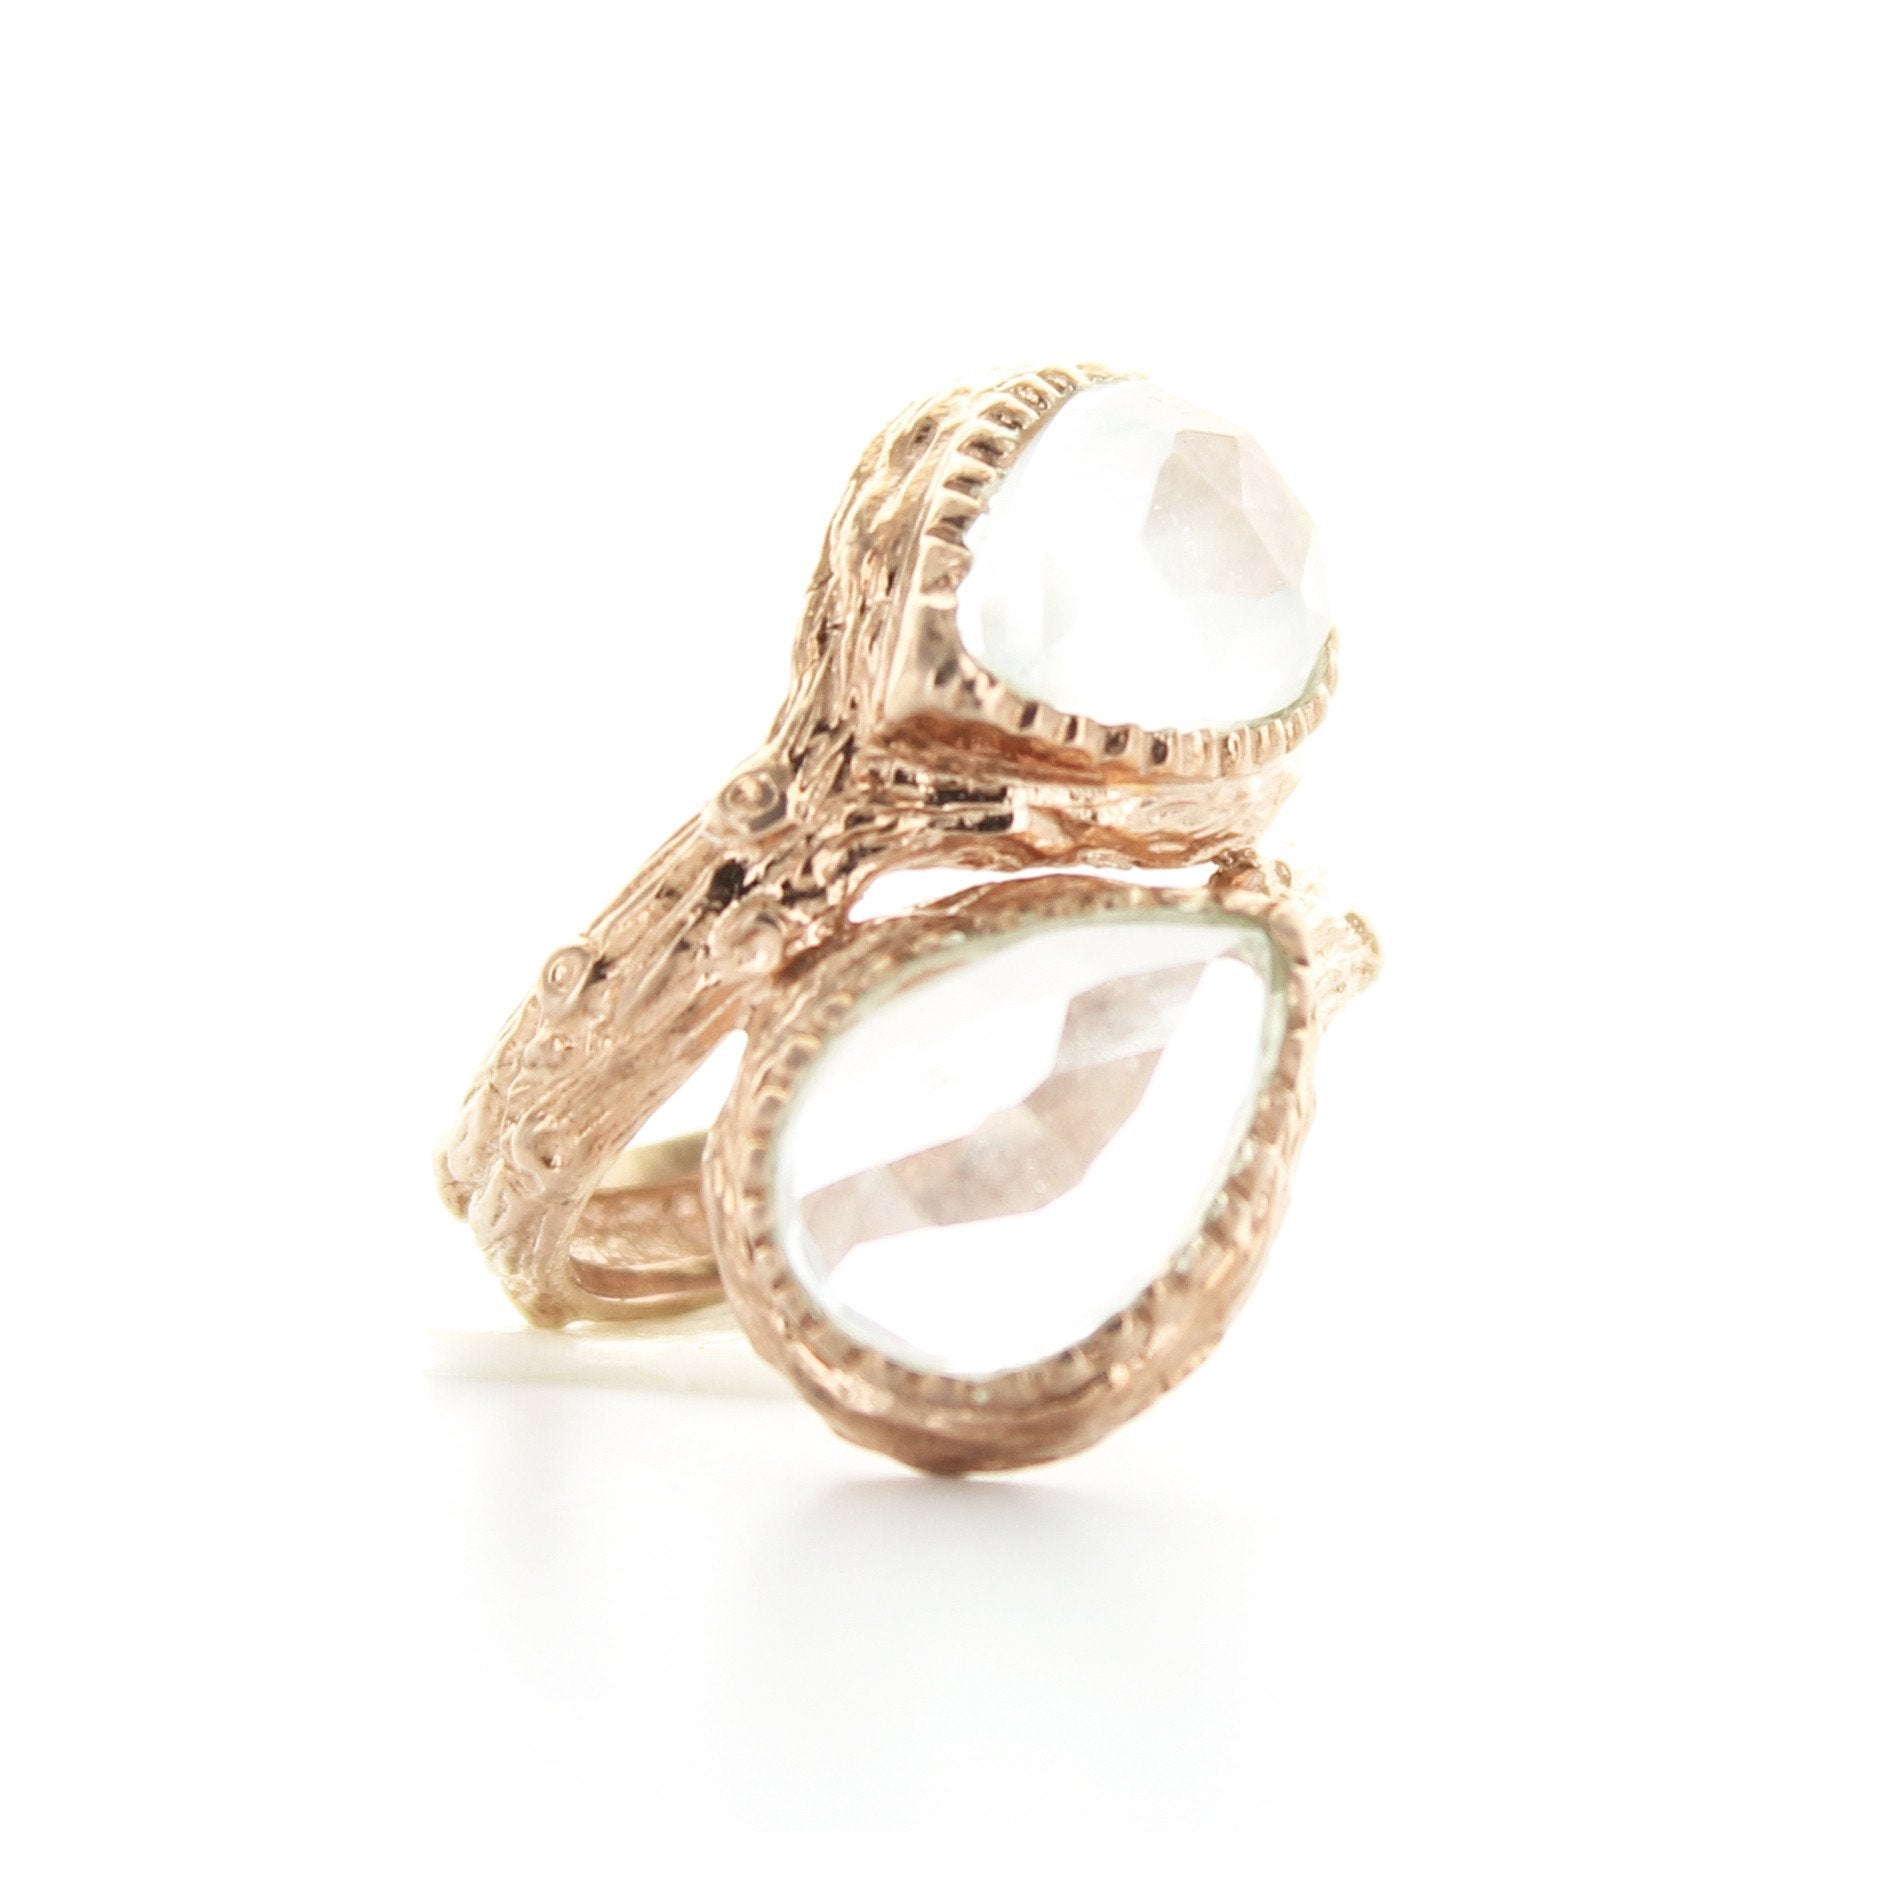 DOUBLE ADORE RING - WHITE TOPAZ & ROSE GOLD - SO PRETTY CARA COTTER